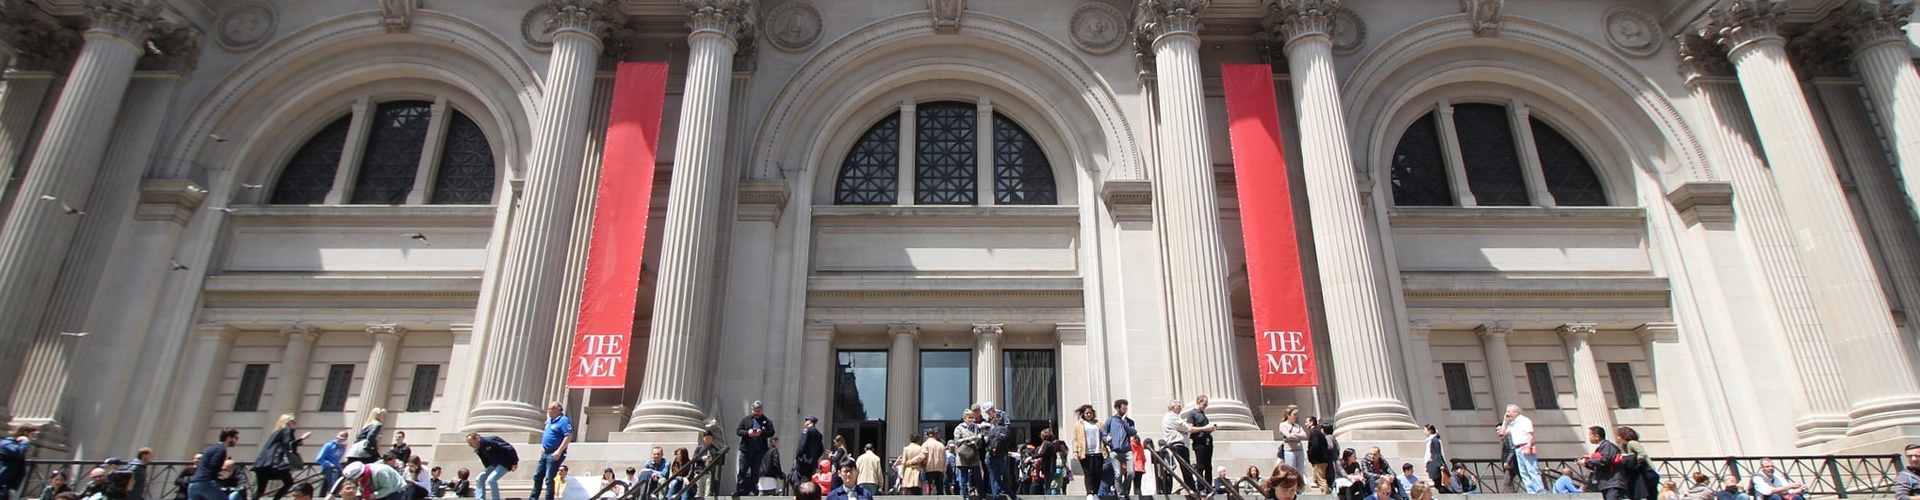 Dixon's Guide to Free Museum Days in NYC